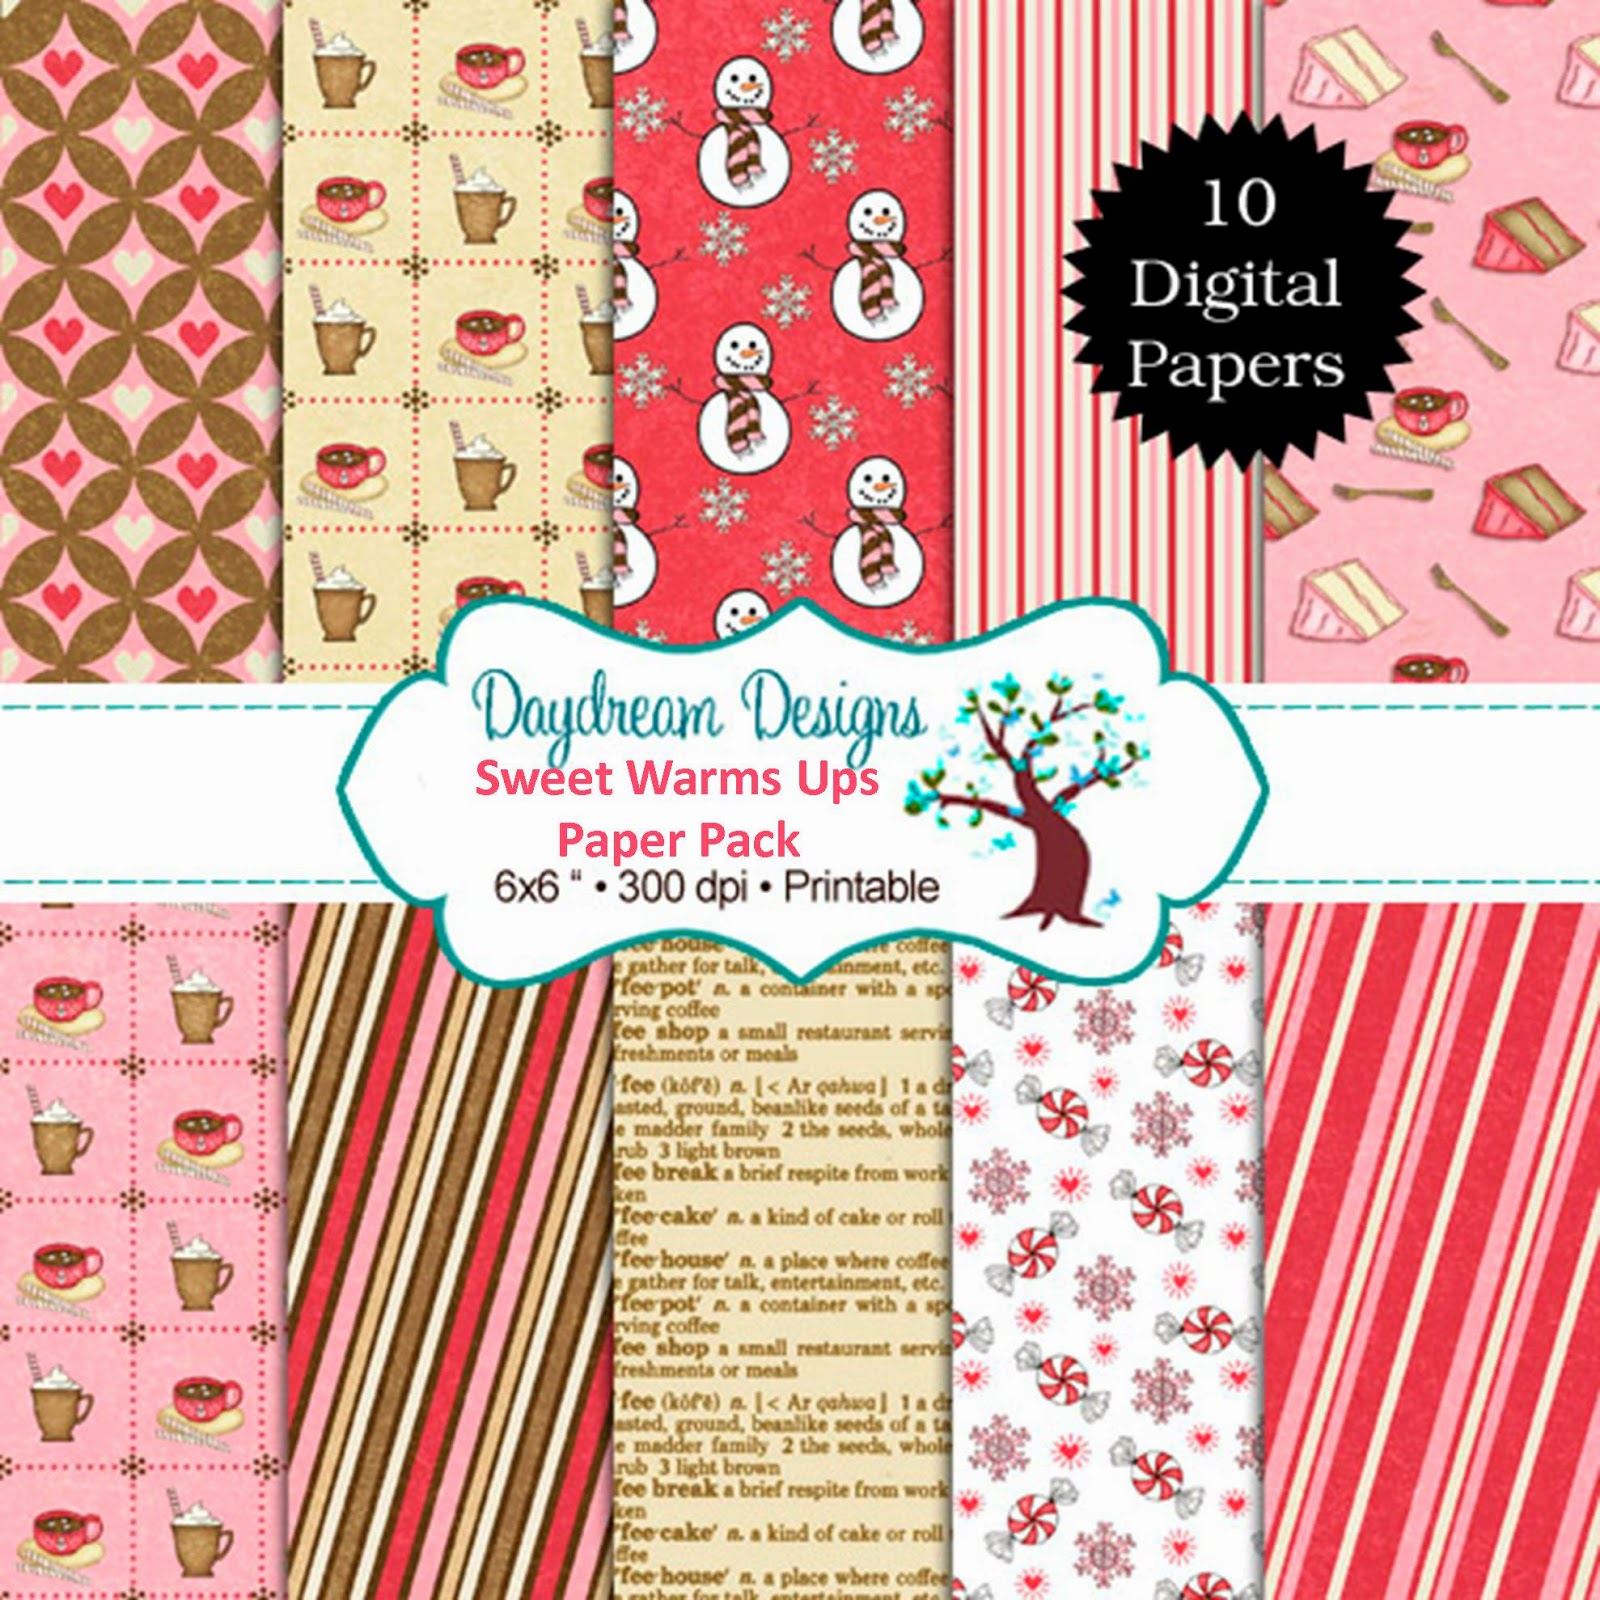 http://www.dianesdaydreamdesigns.com/store/p779/DD-Sweet_Warm_Ups_Digi_Papers.html